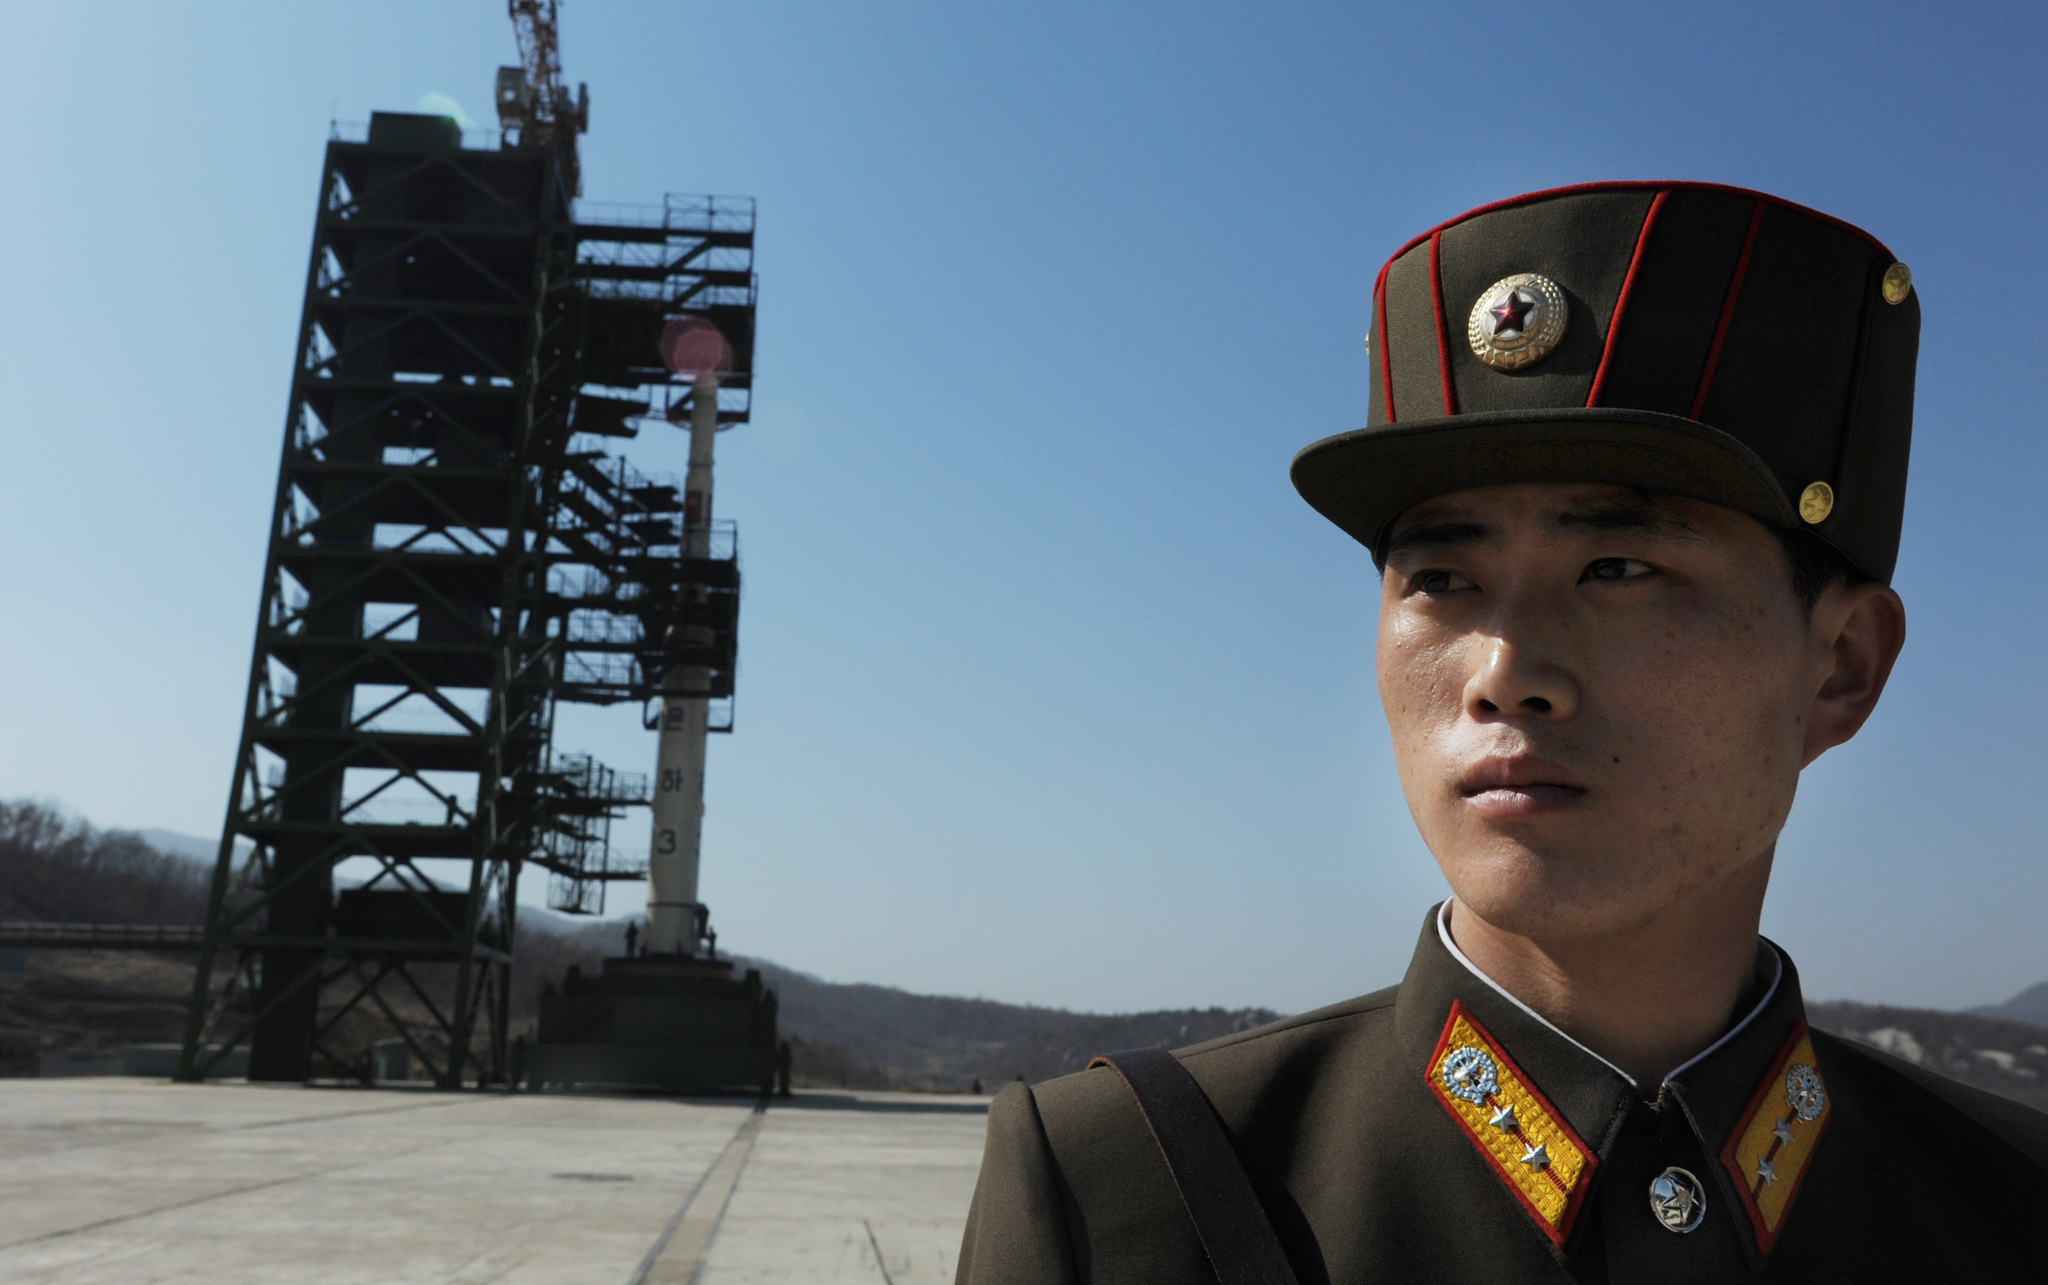 North Korea opens its window for rocket launch - CNN.